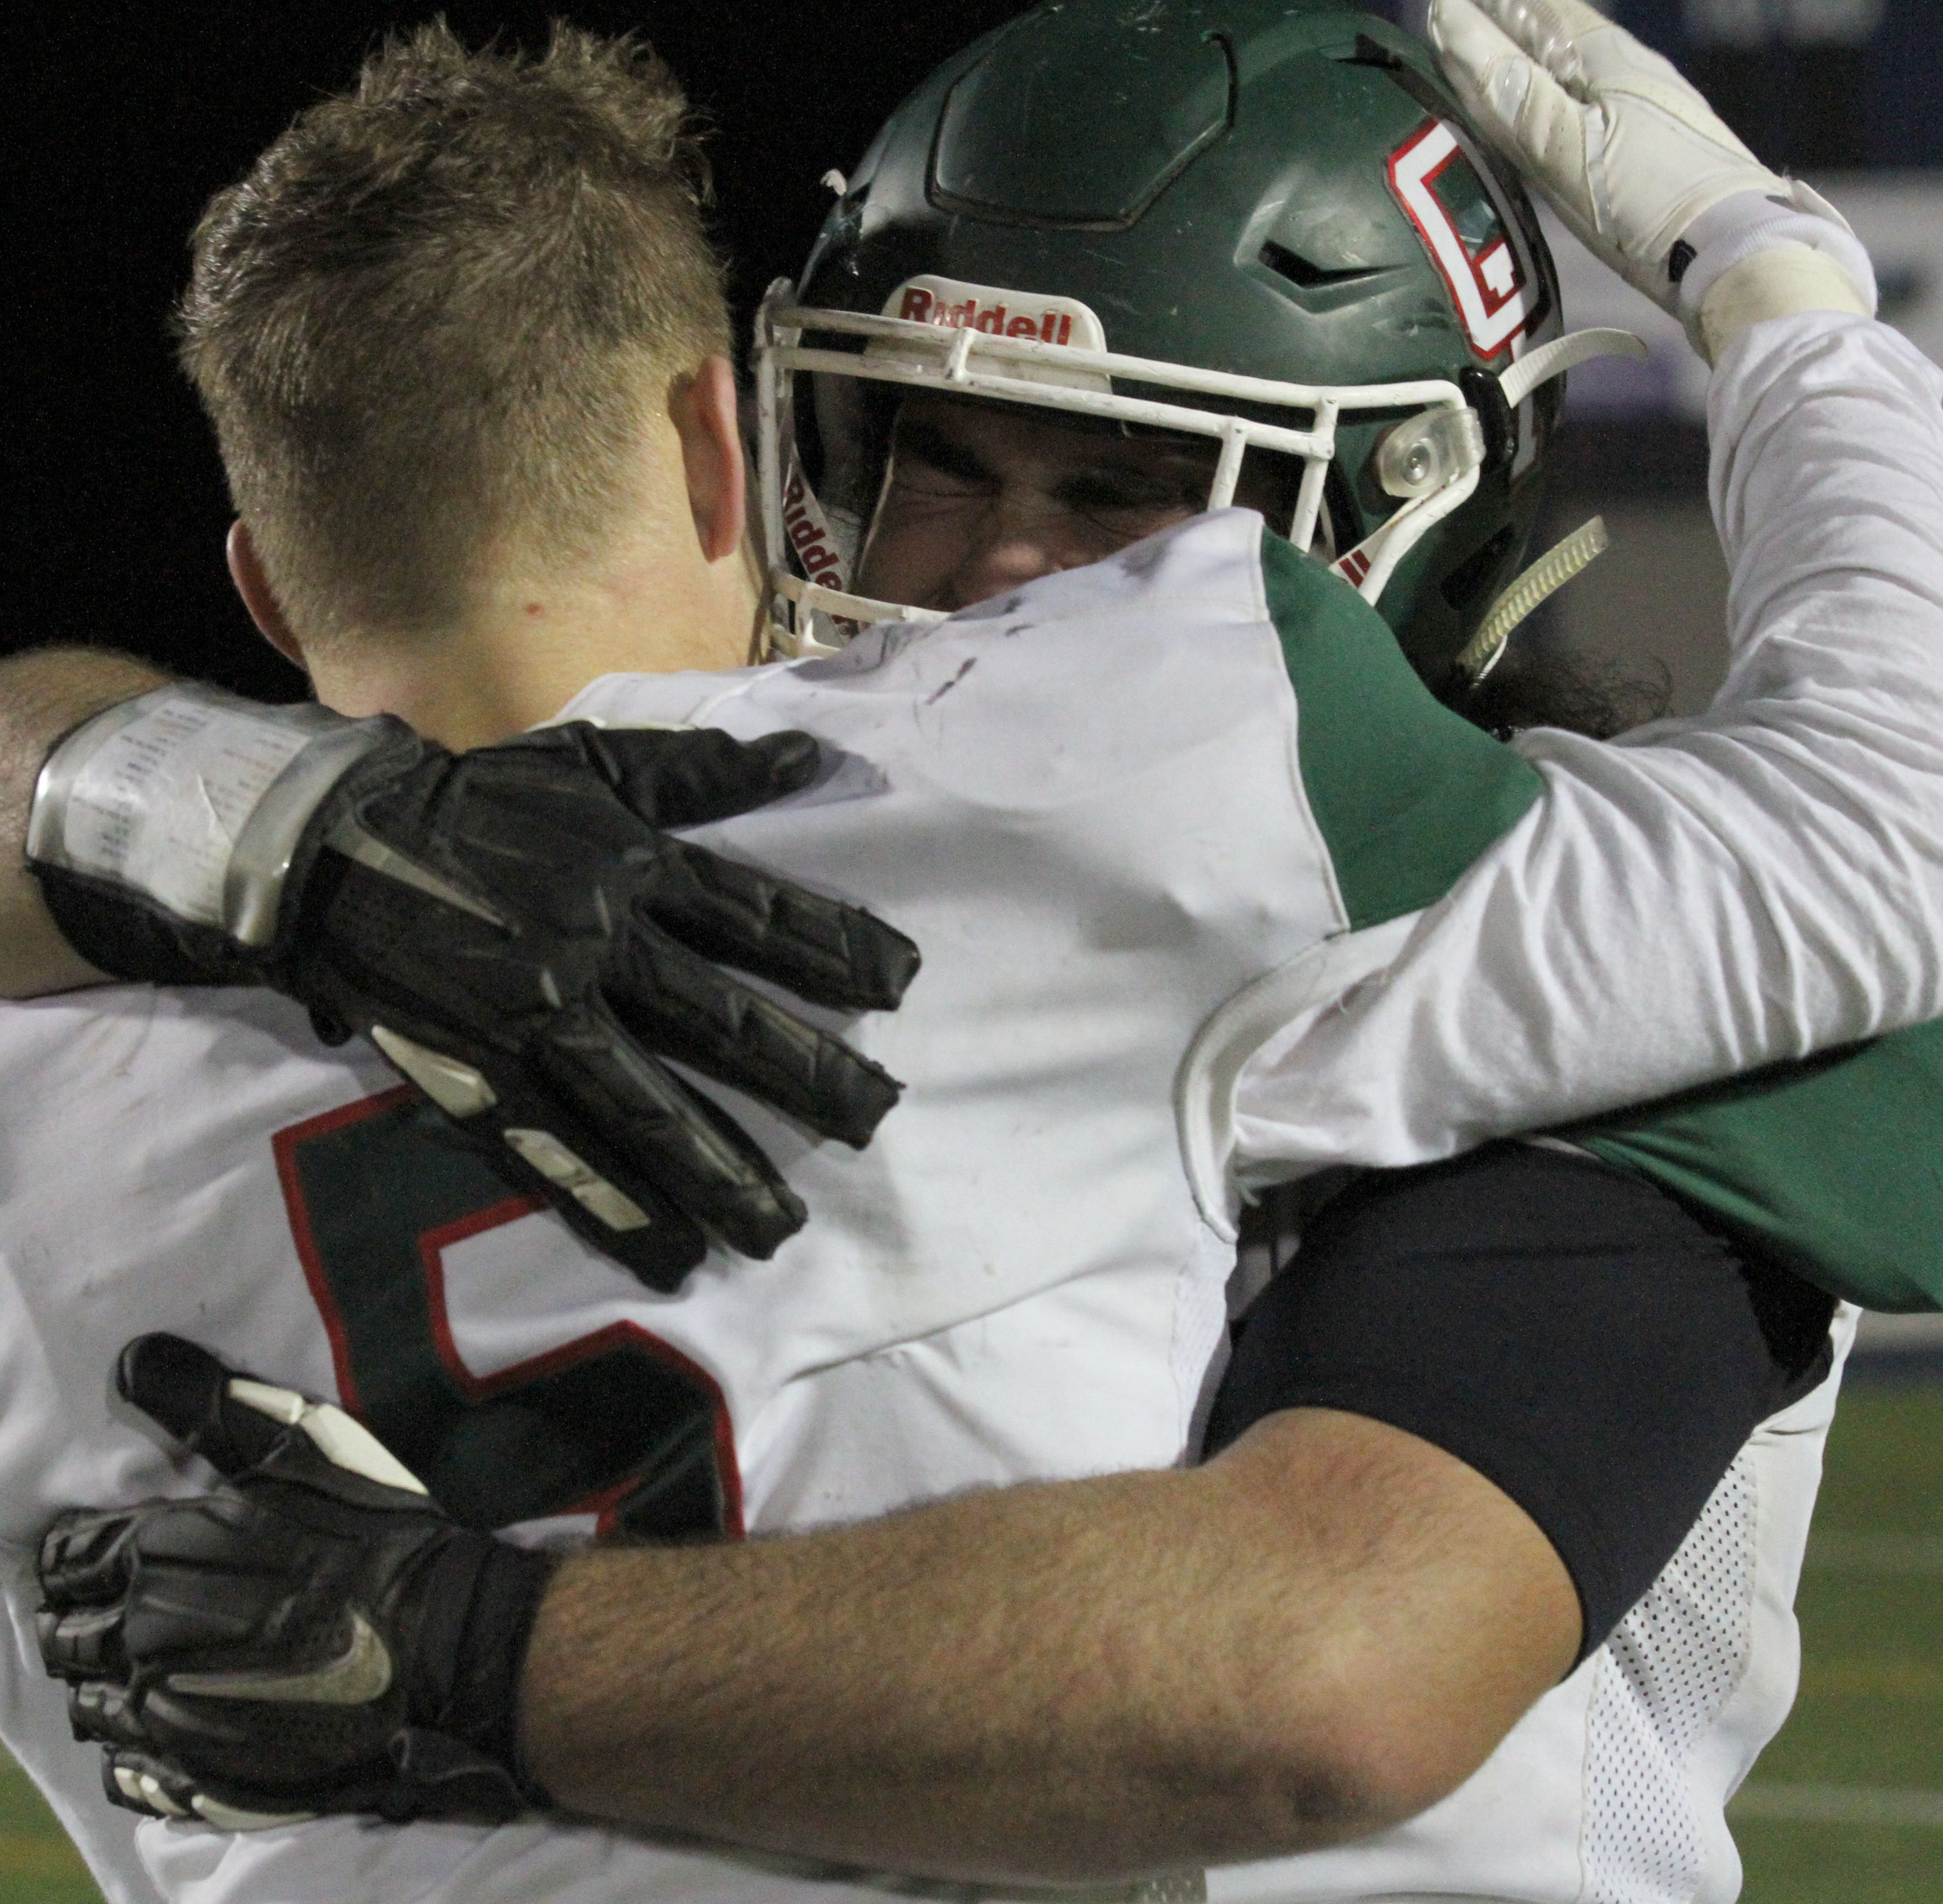 Oak Harbor loses 14-0 to Liberty Center in Week 12